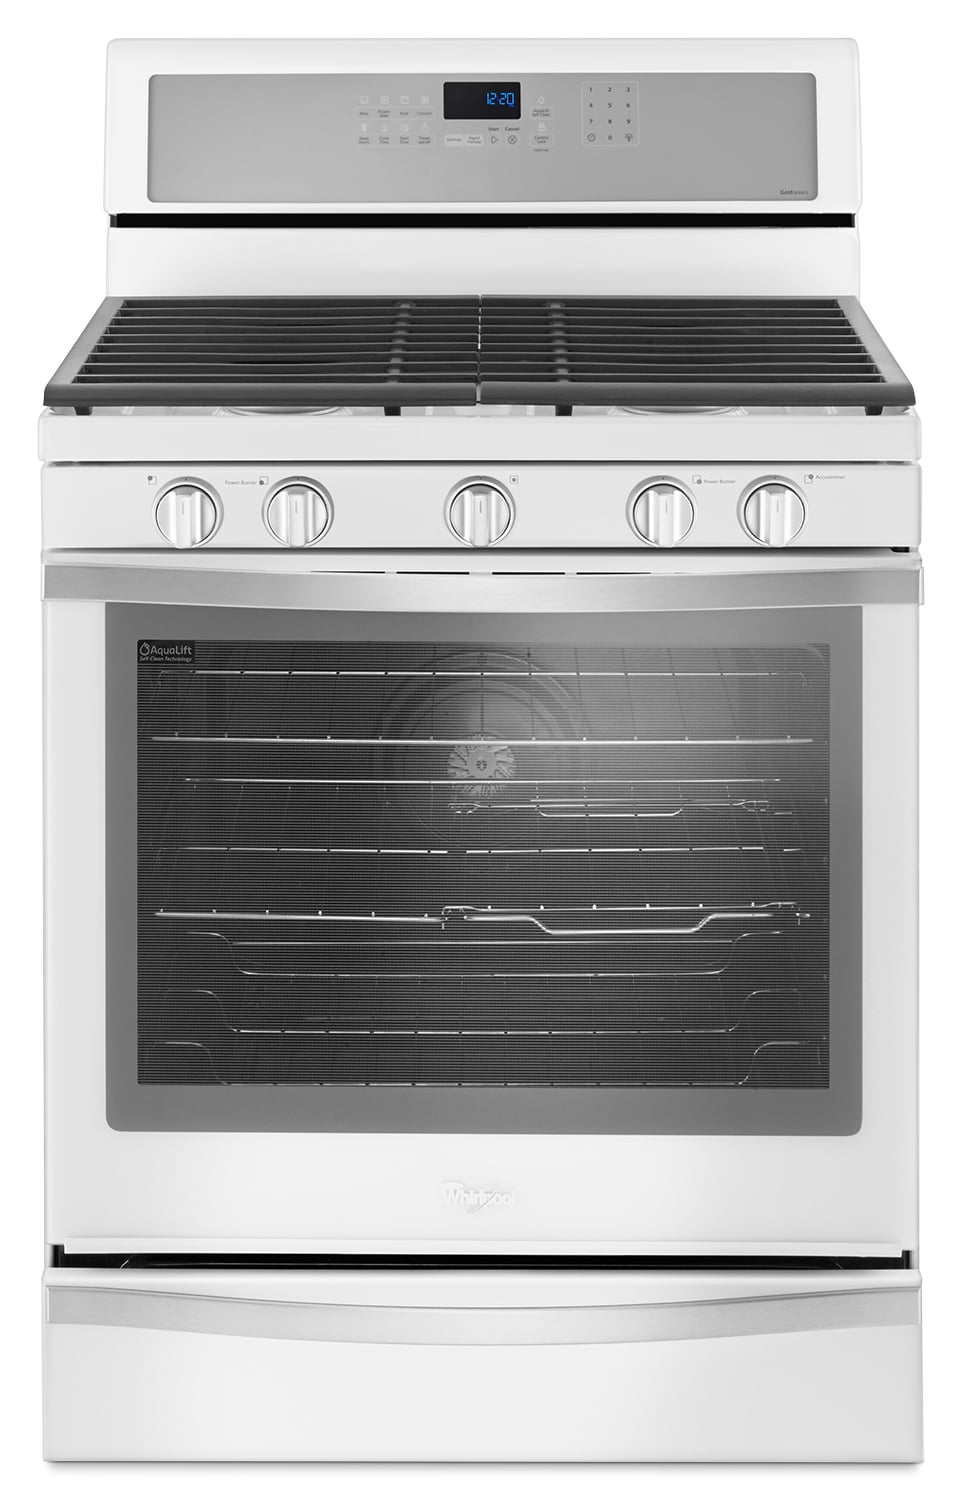 Cooking Products - Whirlpool® 5.8 Cu. Ft. Freestanding Gas Range – WFG745H0FH